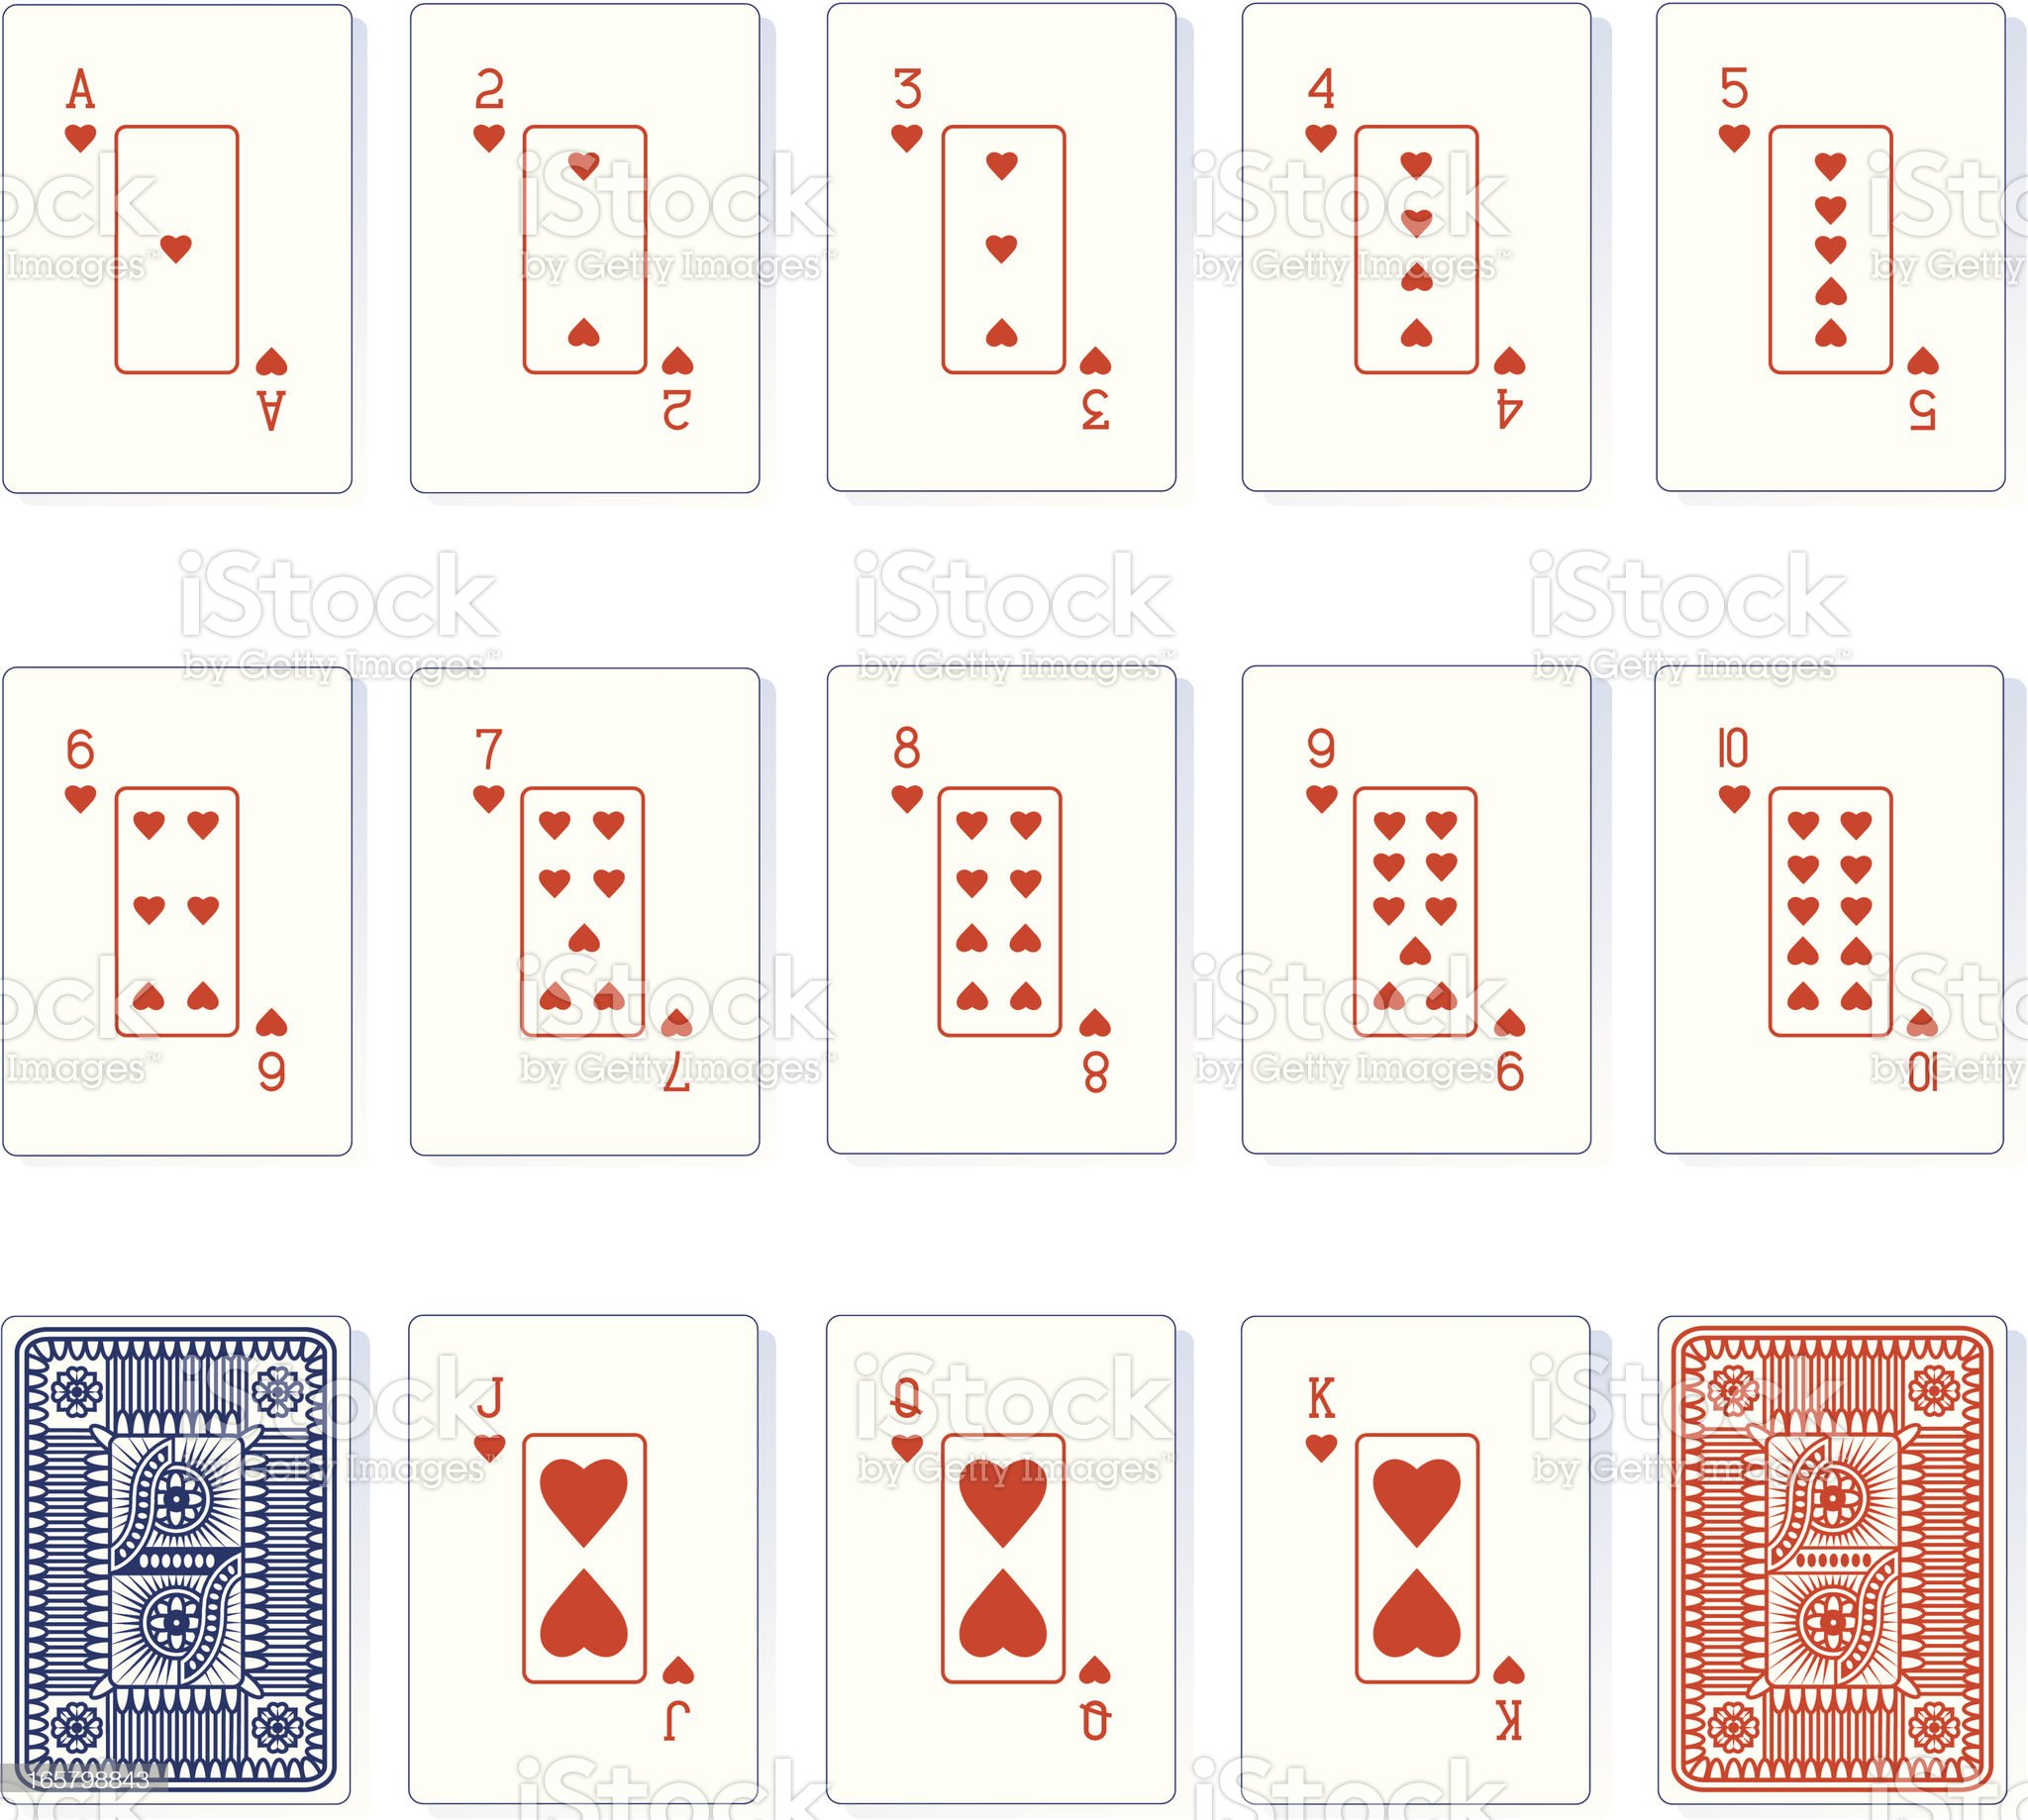 Heart Suit Playing Cards and Backs royalty-free stock vector art